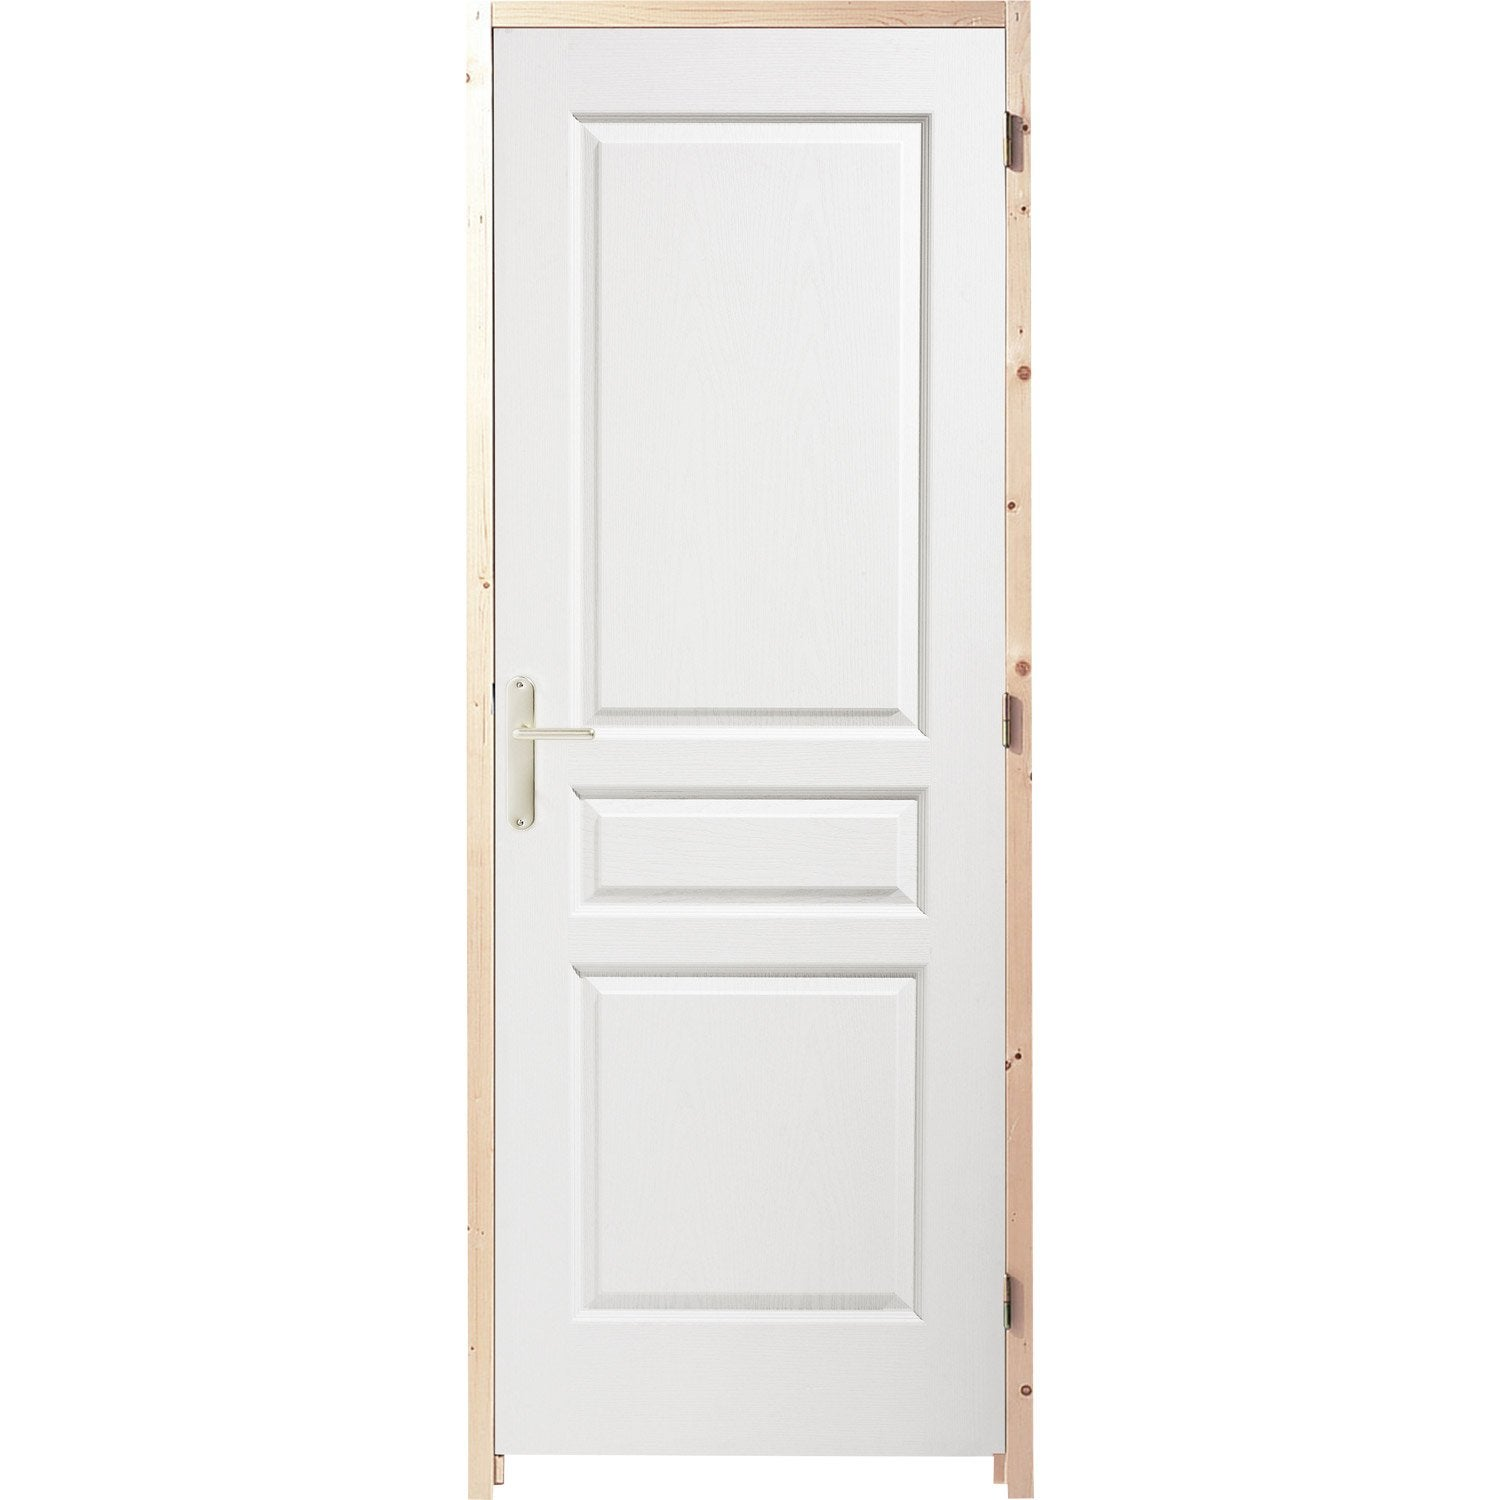 Bloc porte acoustique postform x cm leroy merlin for Porte isolation phonique